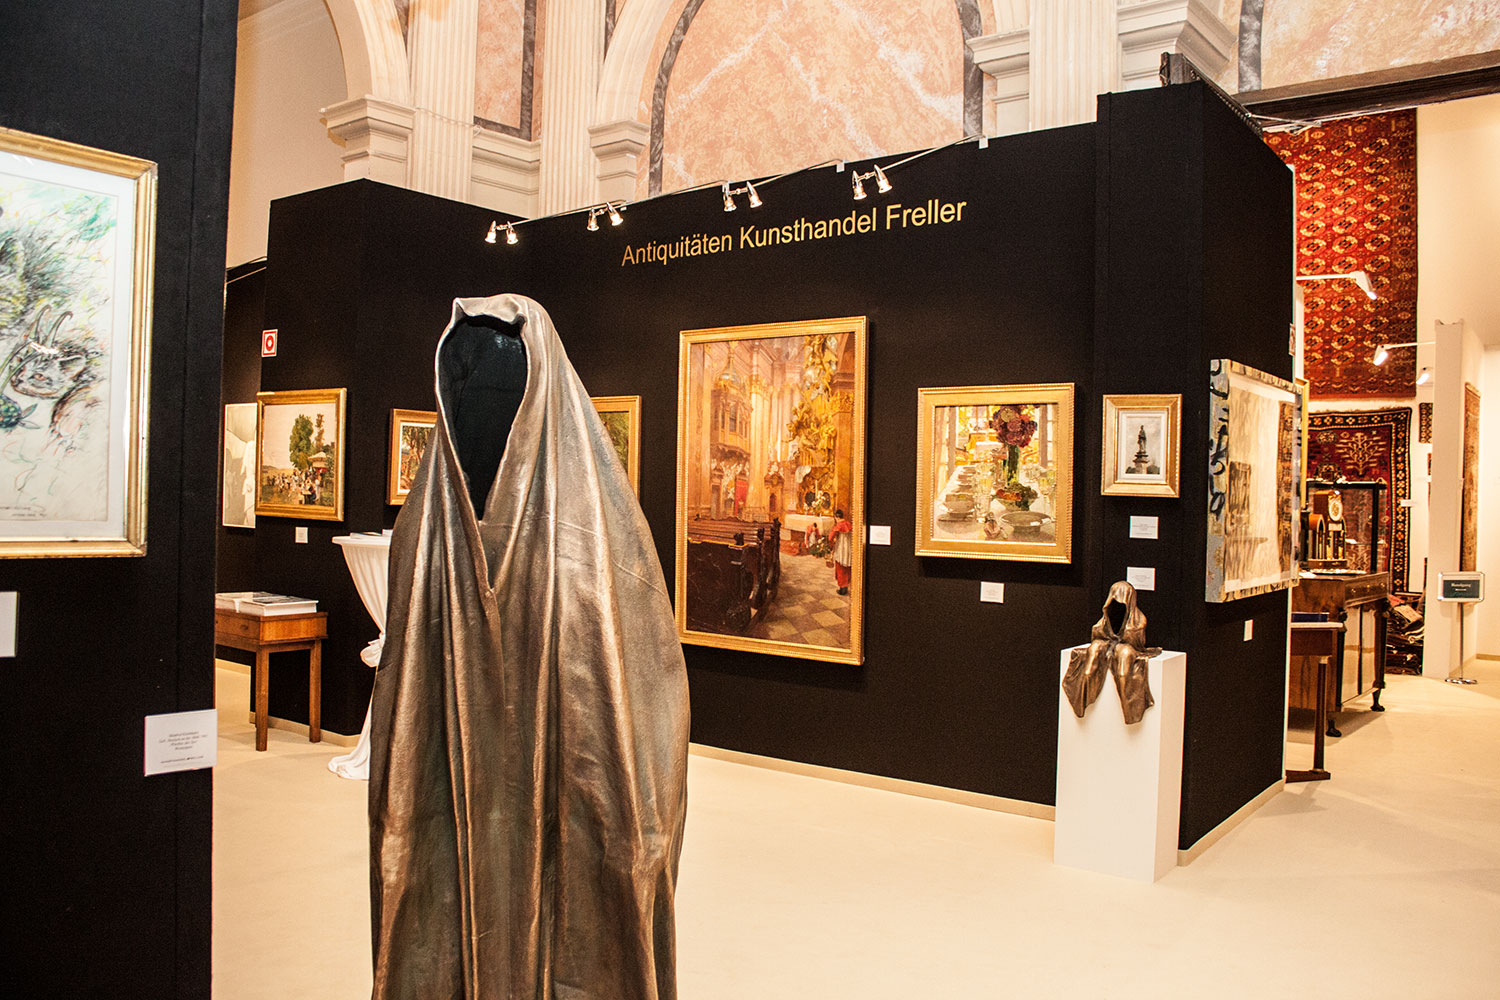 wiener-internationale-kunst-und-antiquitaetenmesse-art-and-antique-fair-vienna-kuenstlerhaus-kunsthandel-freller-sculpture-guardians-kielnhofer-9747y